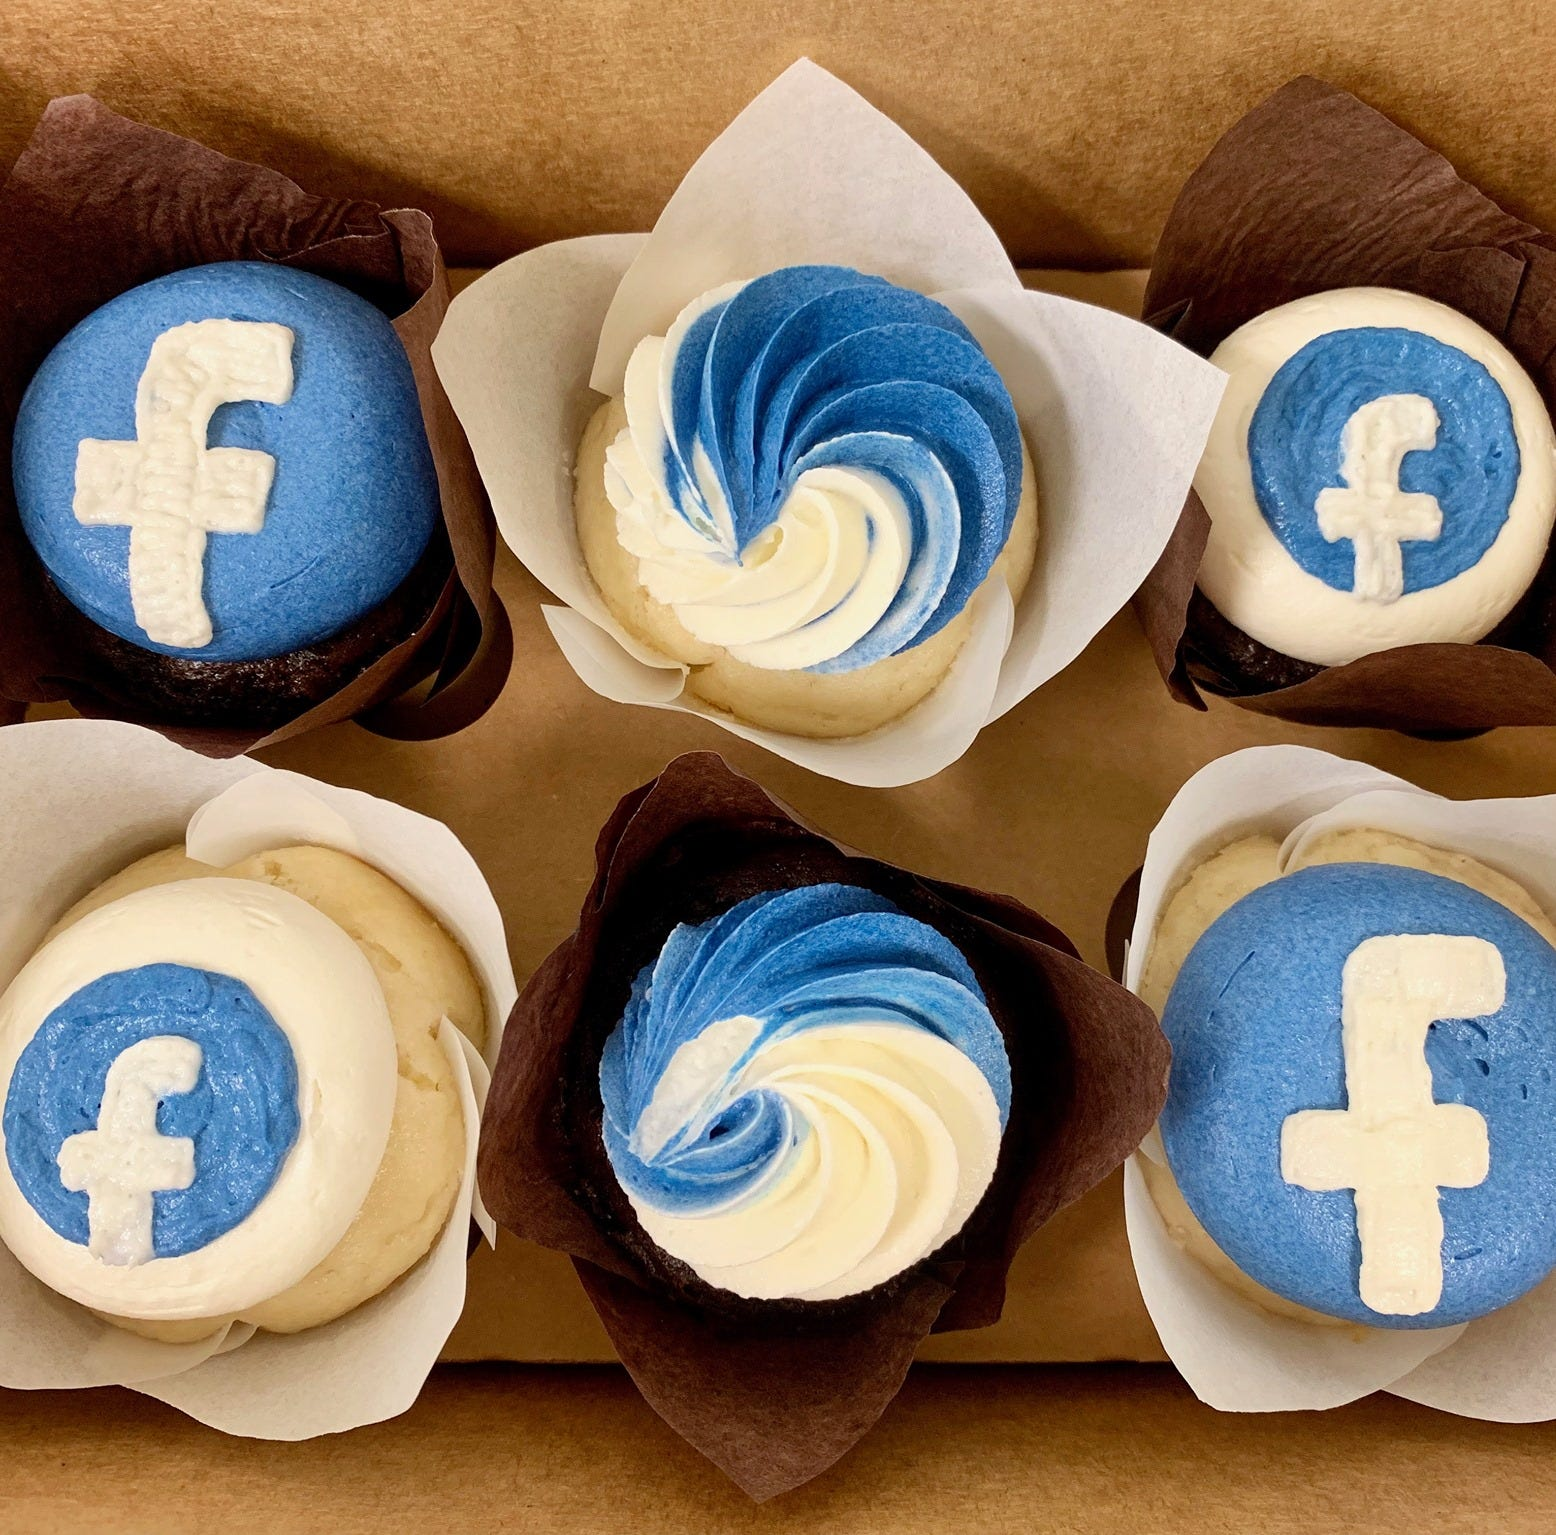 Facebook is giving away 500 free Scratch cupcakes on Friday. Here's how to get one